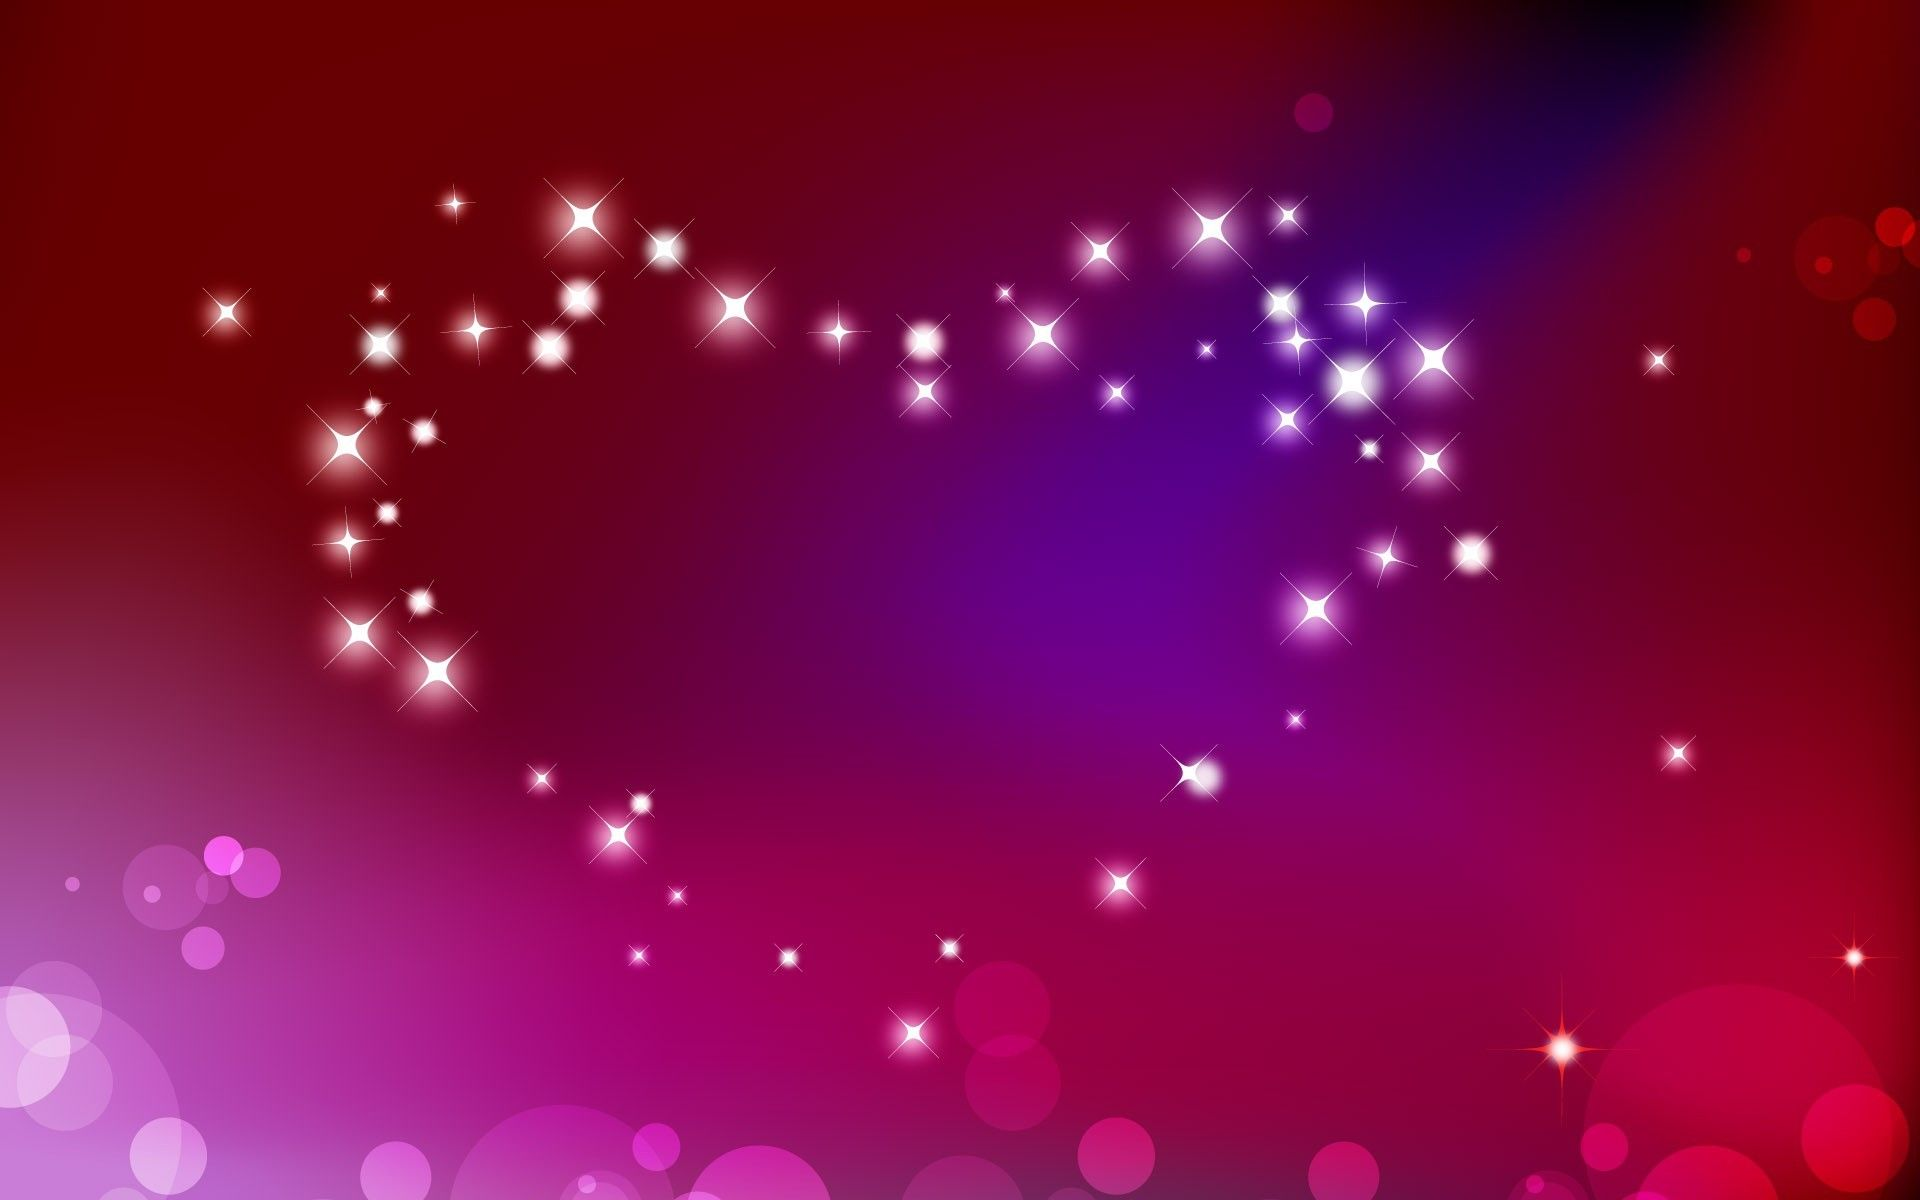 Abstract Love Wallpapers Top Free Abstract Love